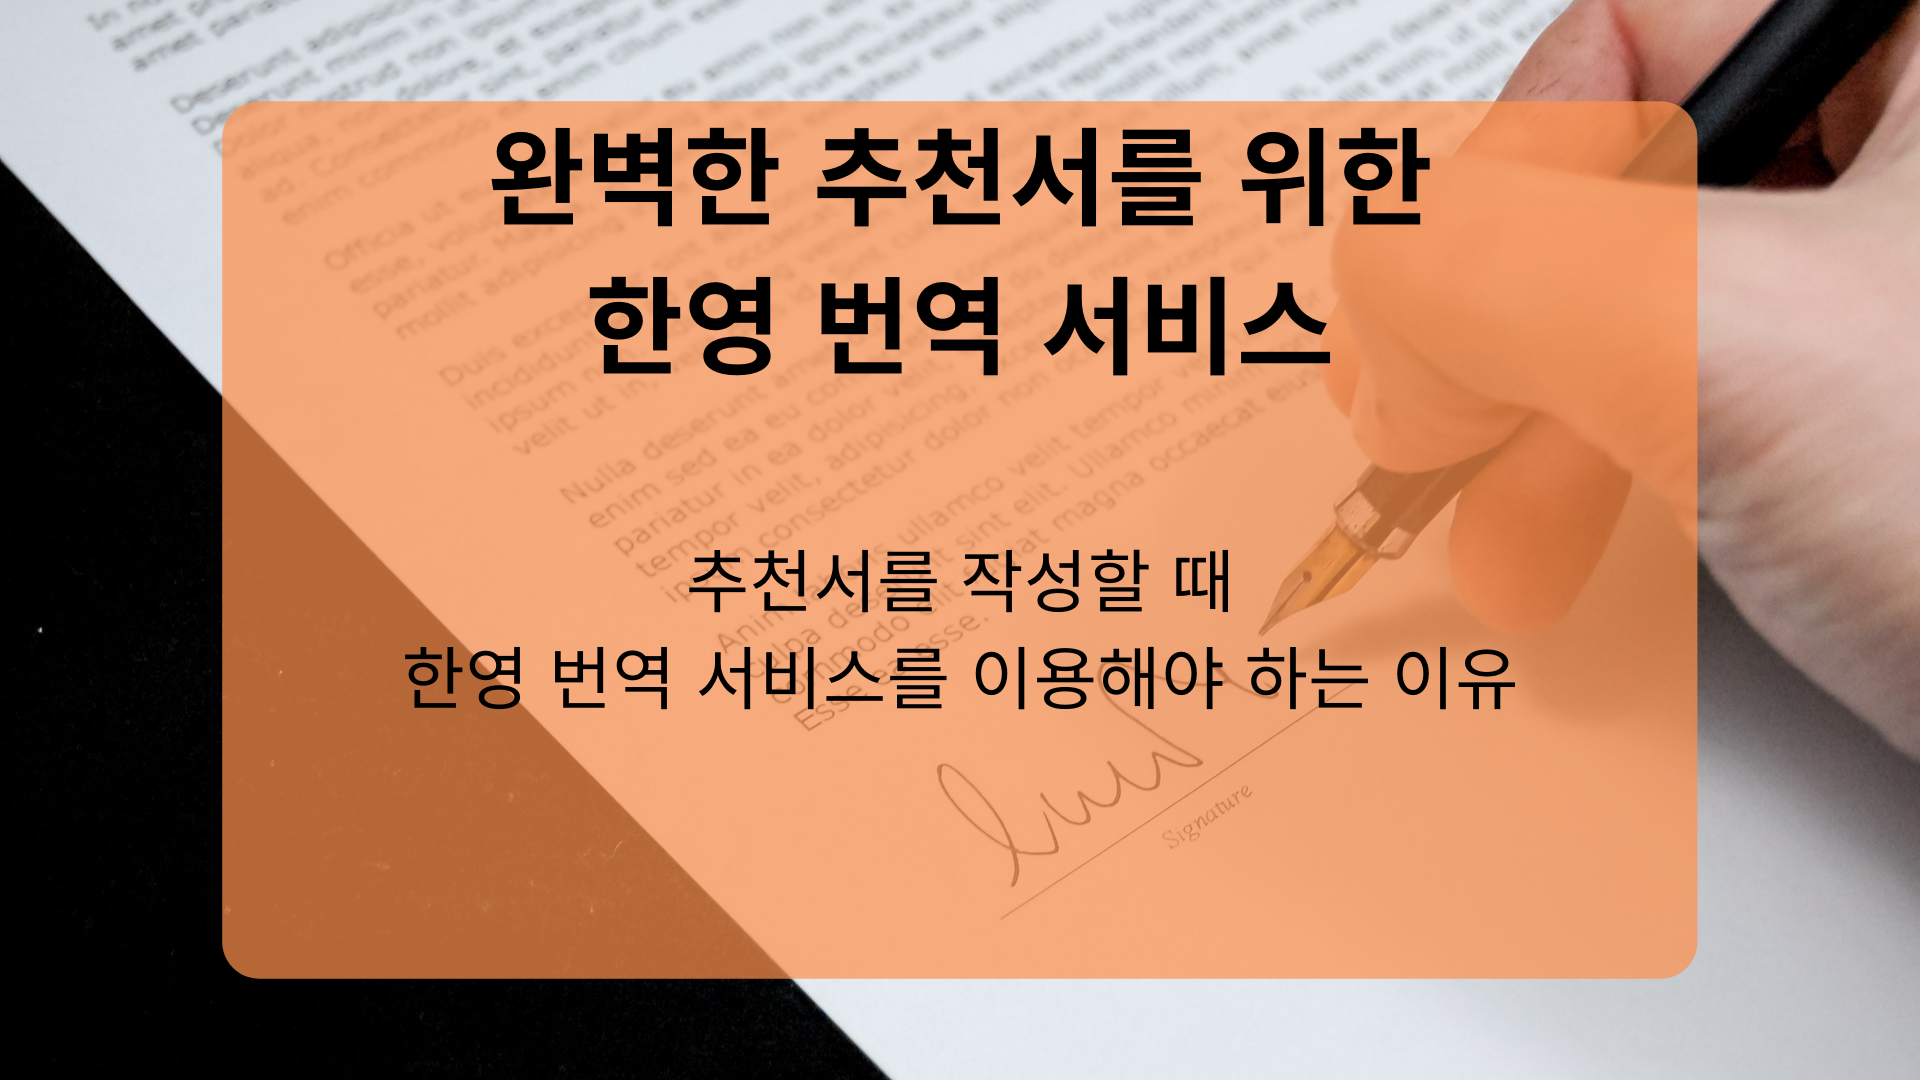 How to Request a Letter of Recommendation - Sample Template의 사본